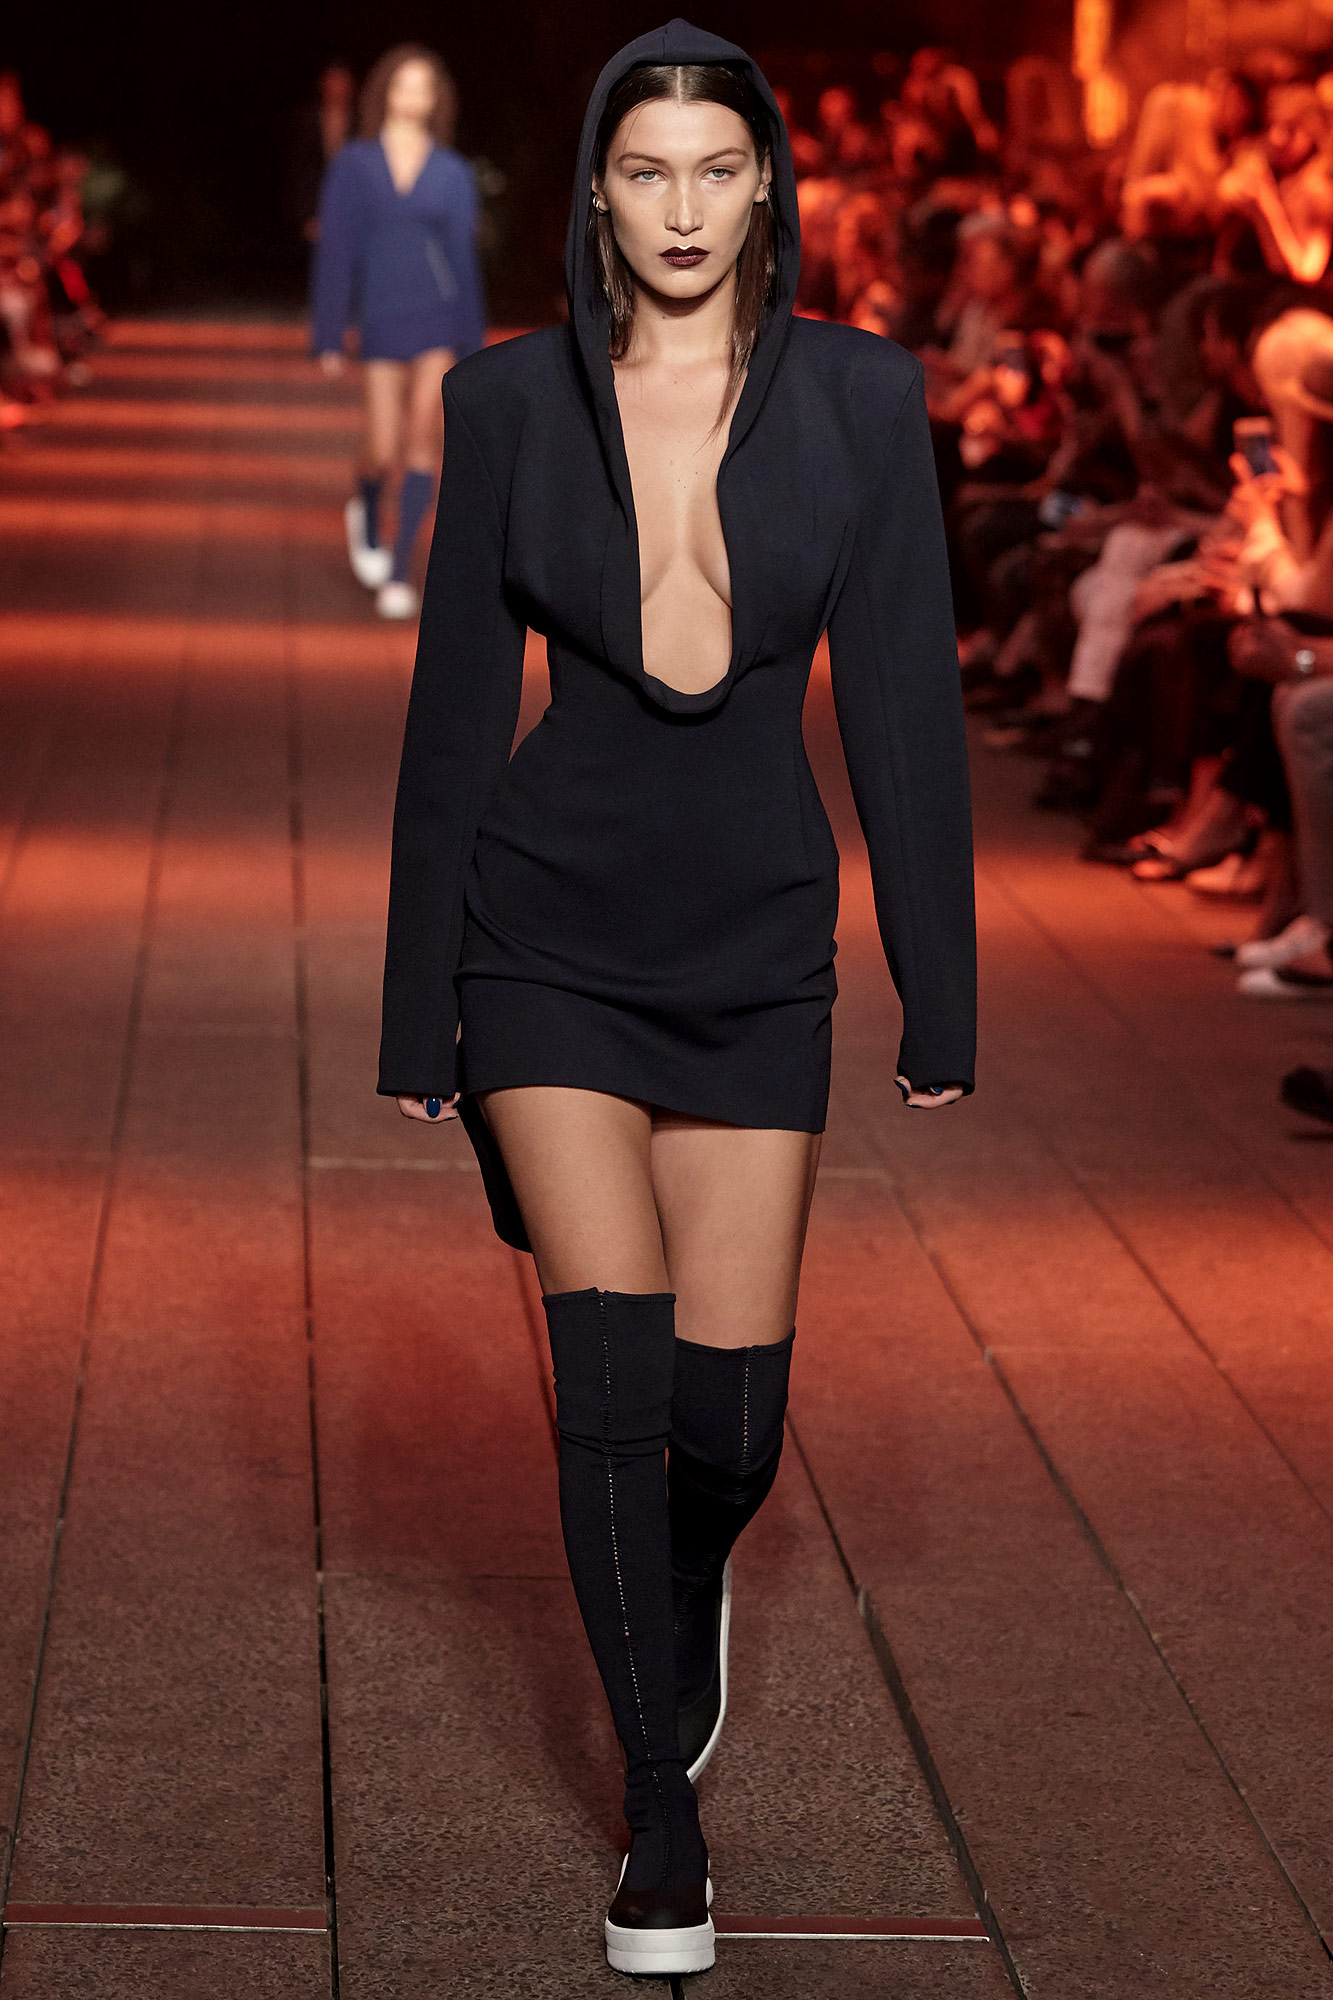 Bella Hadid walks the runway wearing DKNY Spring 2017 on the highline during New York Fashion Week on September 12, 2016 in New York City.